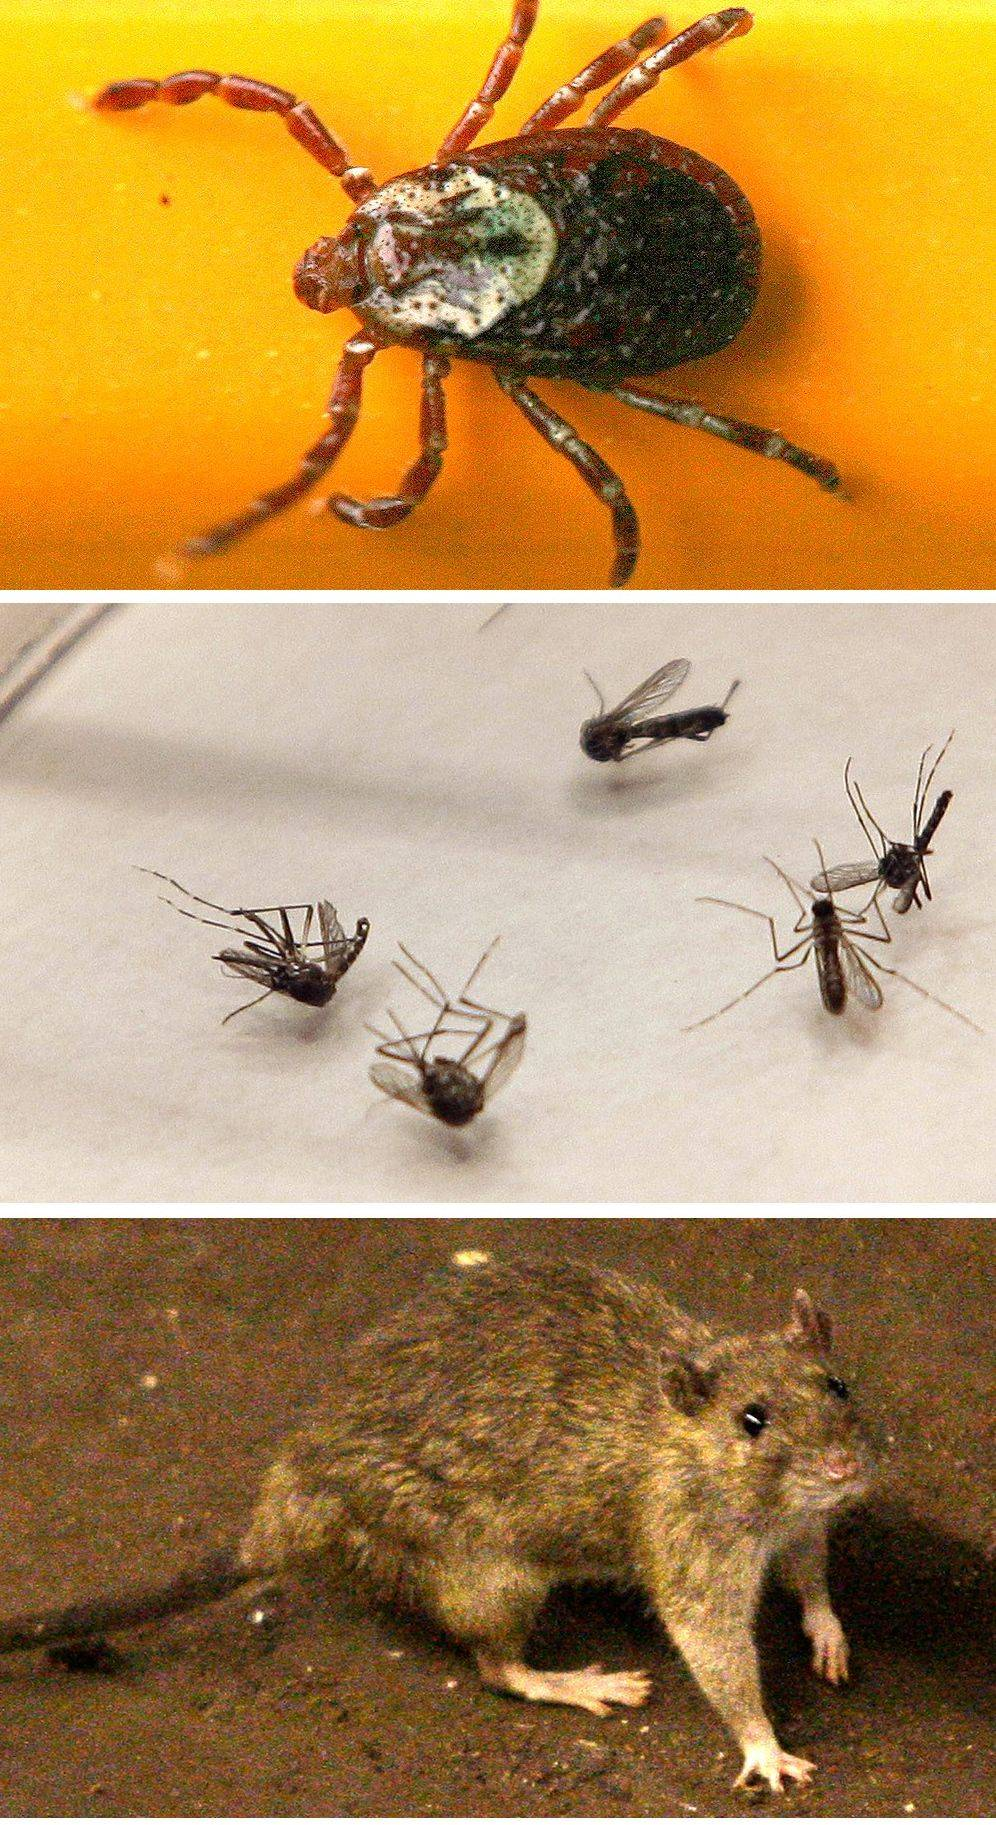 Hantavirus, West Nile, Lyme disease and bubonic plague can be spread by ticks, top photo, mosquitoes and rats.